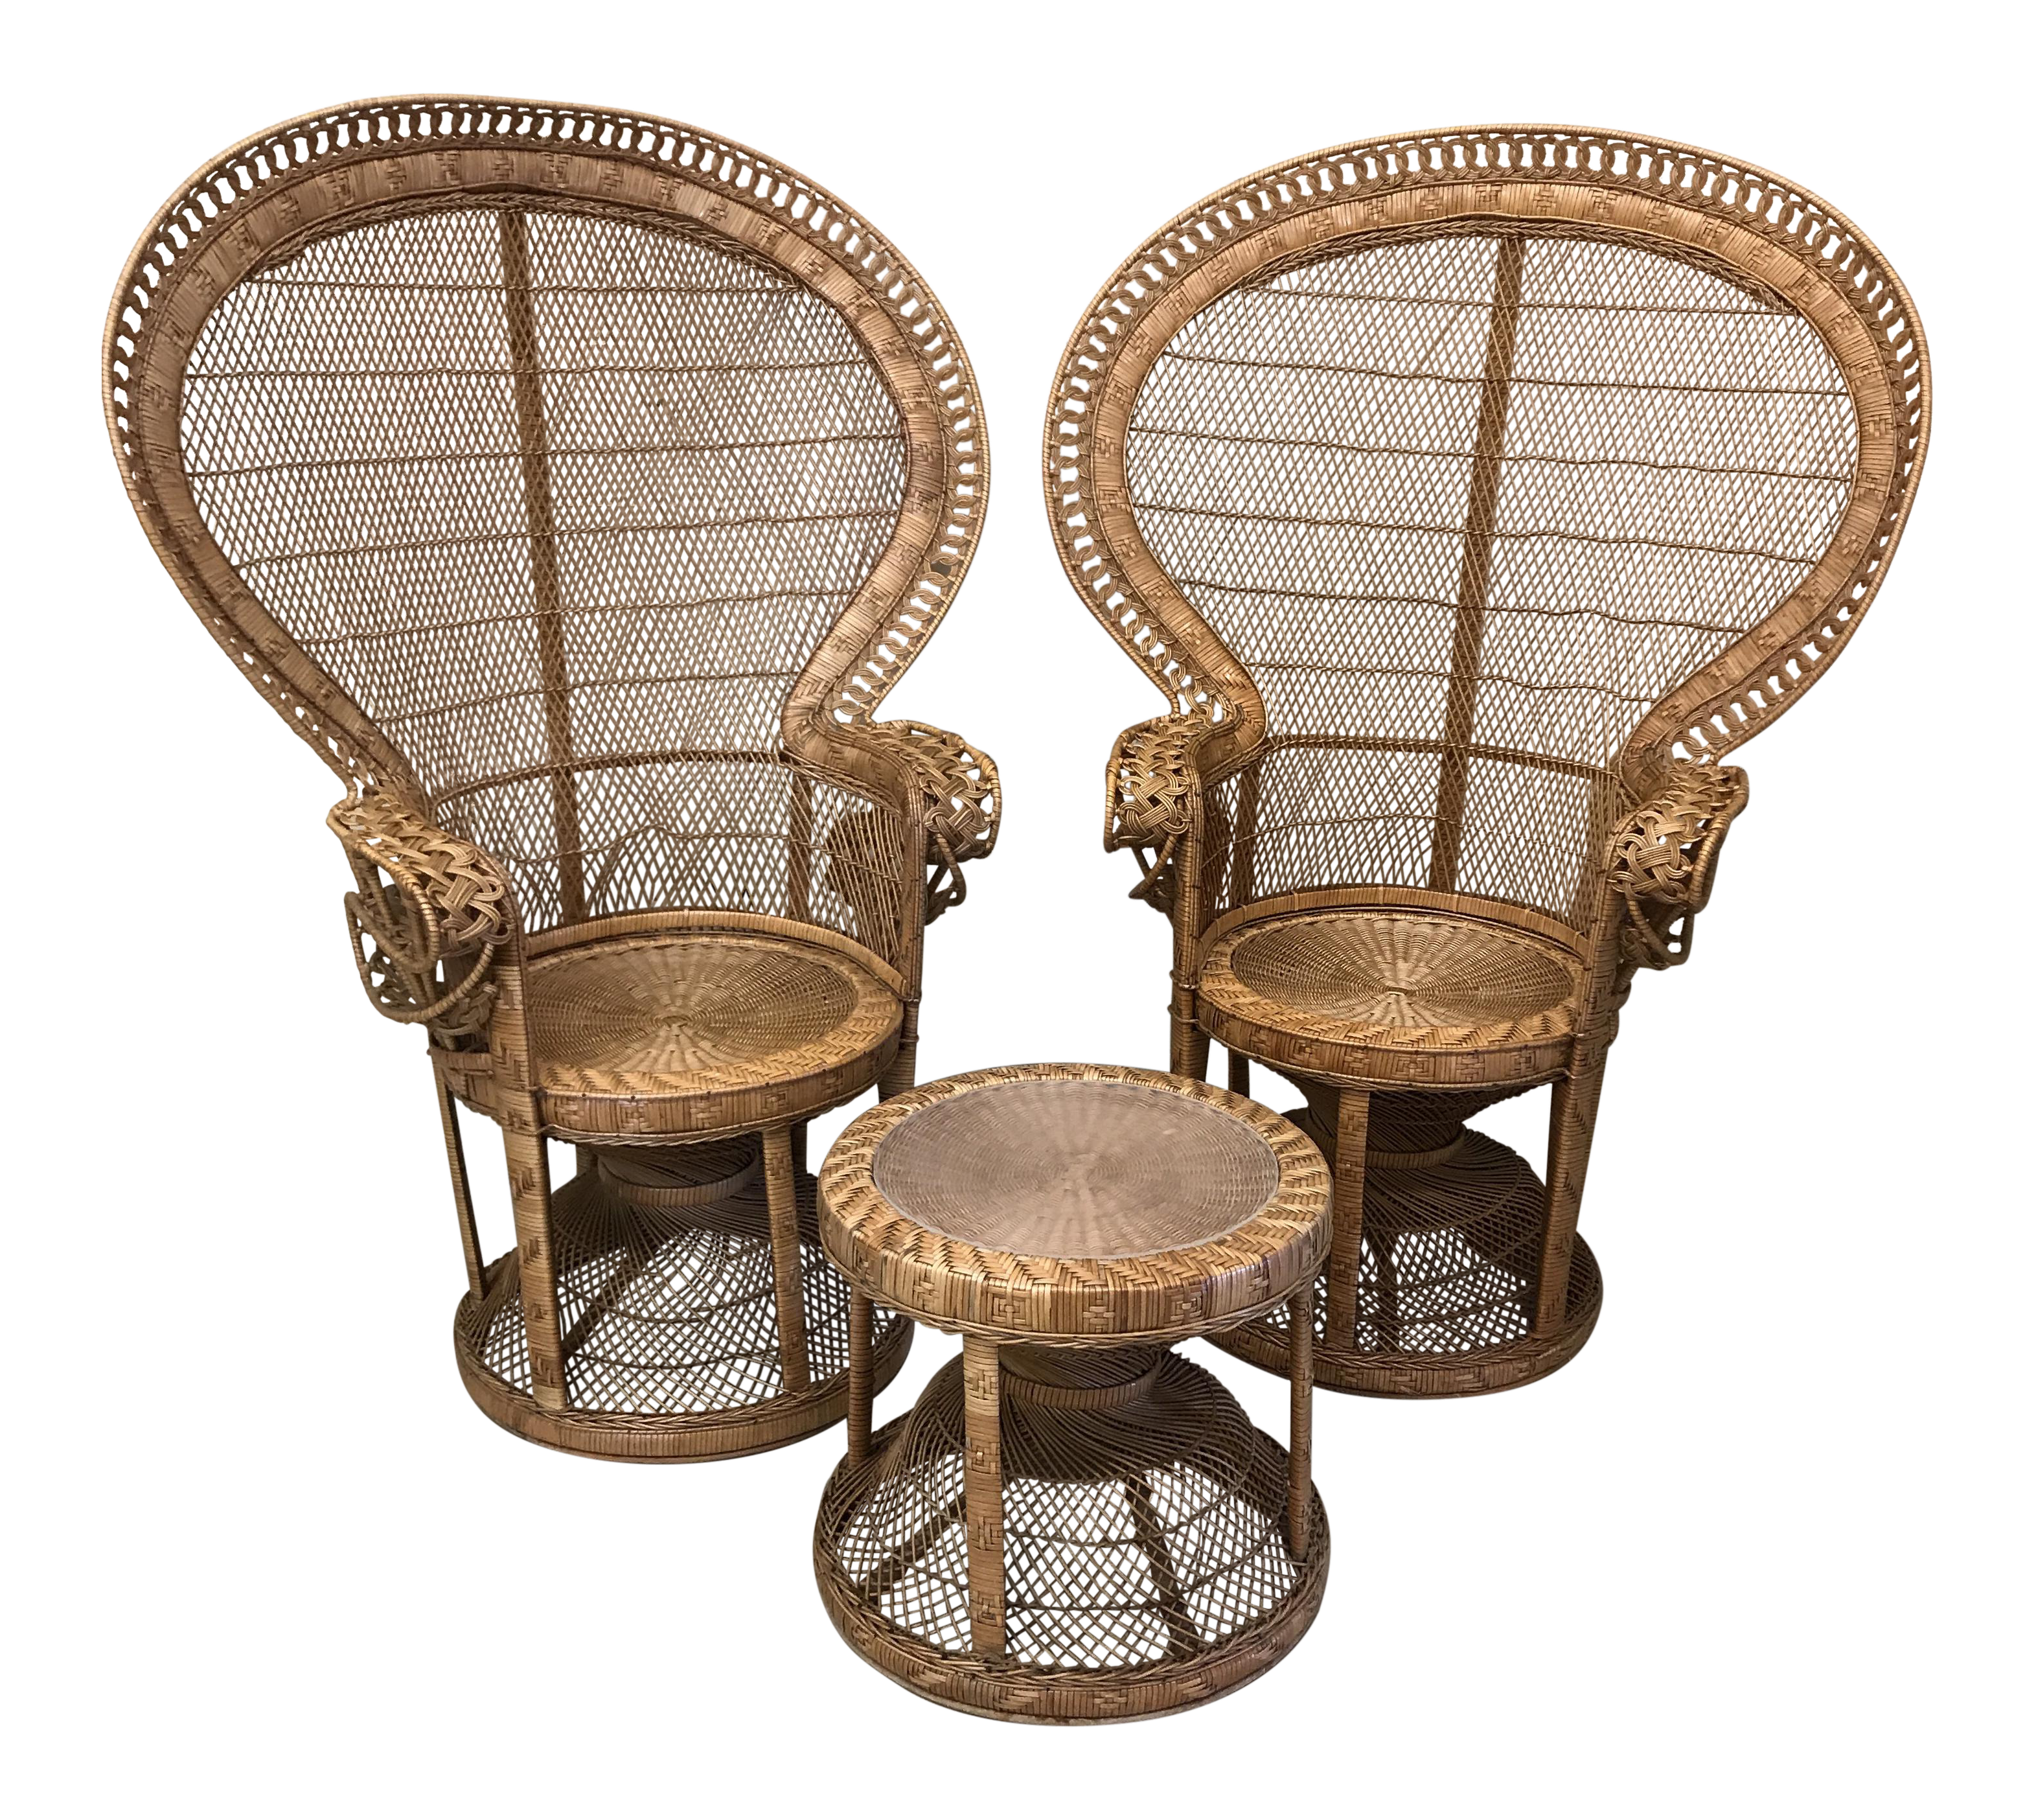 1970s Emmanuelle Wicker Rattan Peacock Chairs & Matching Table A